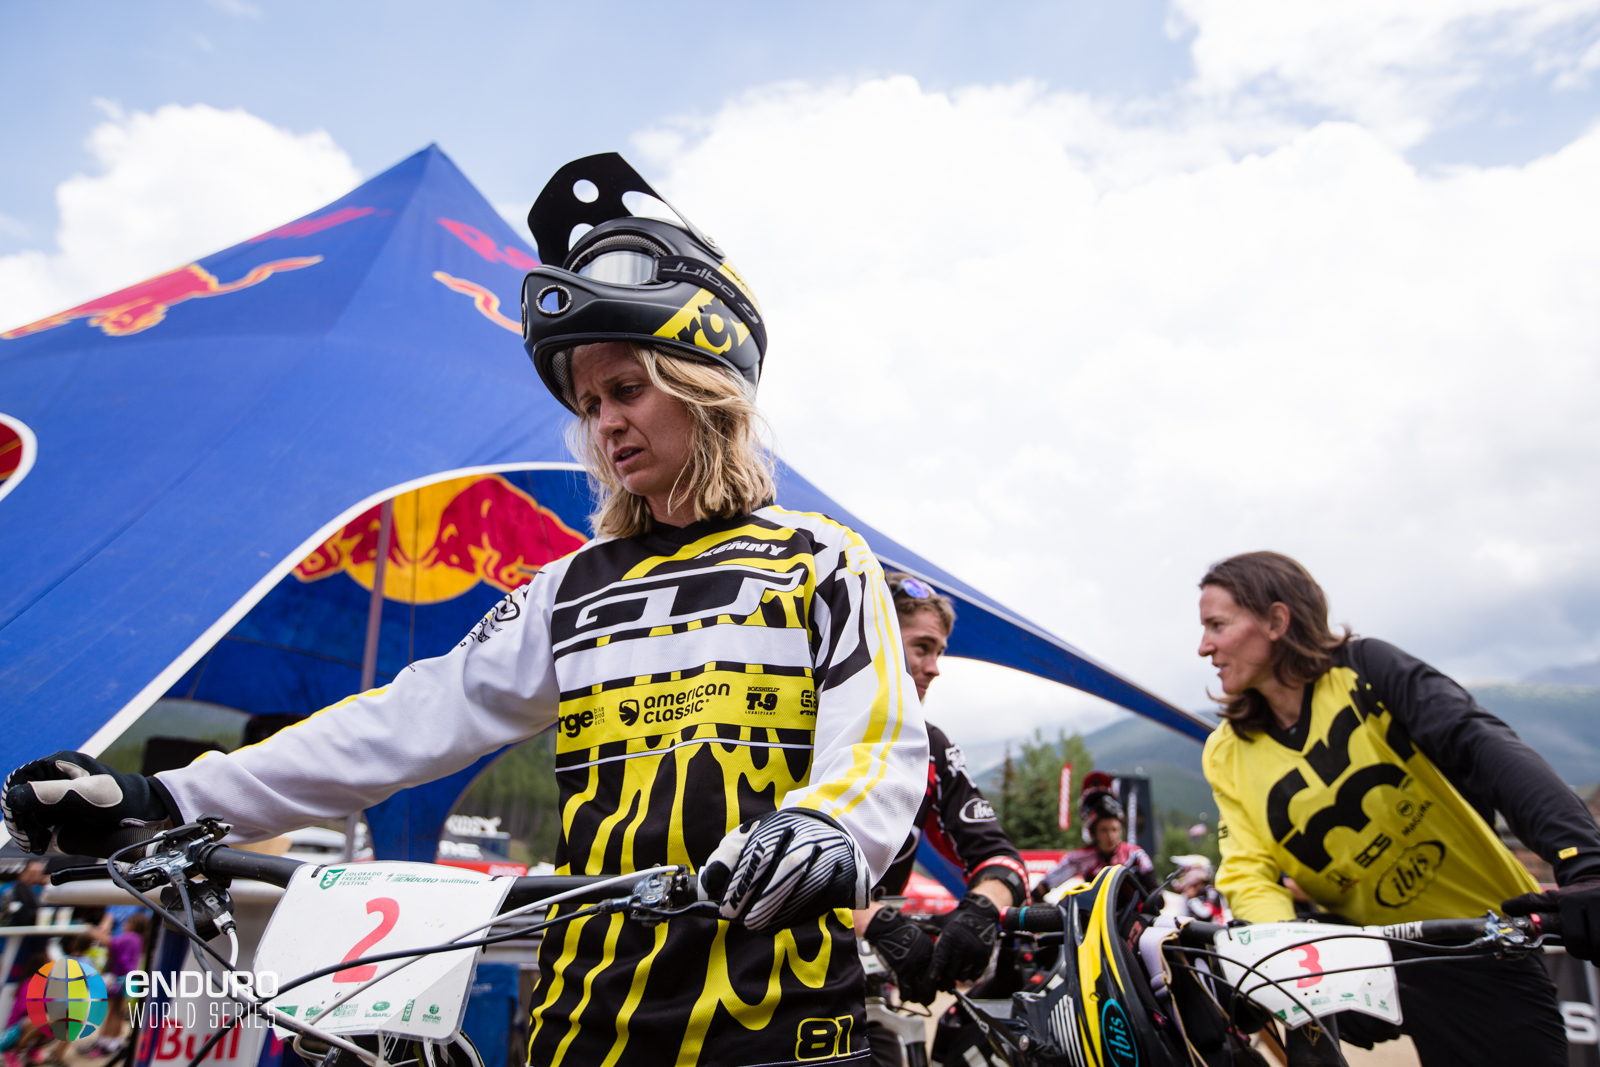 Ceclie Ravanel realises she has missed out on a podium spot this weekend. EWS 5 2014 Winter Park. Photo by Matt Wragg